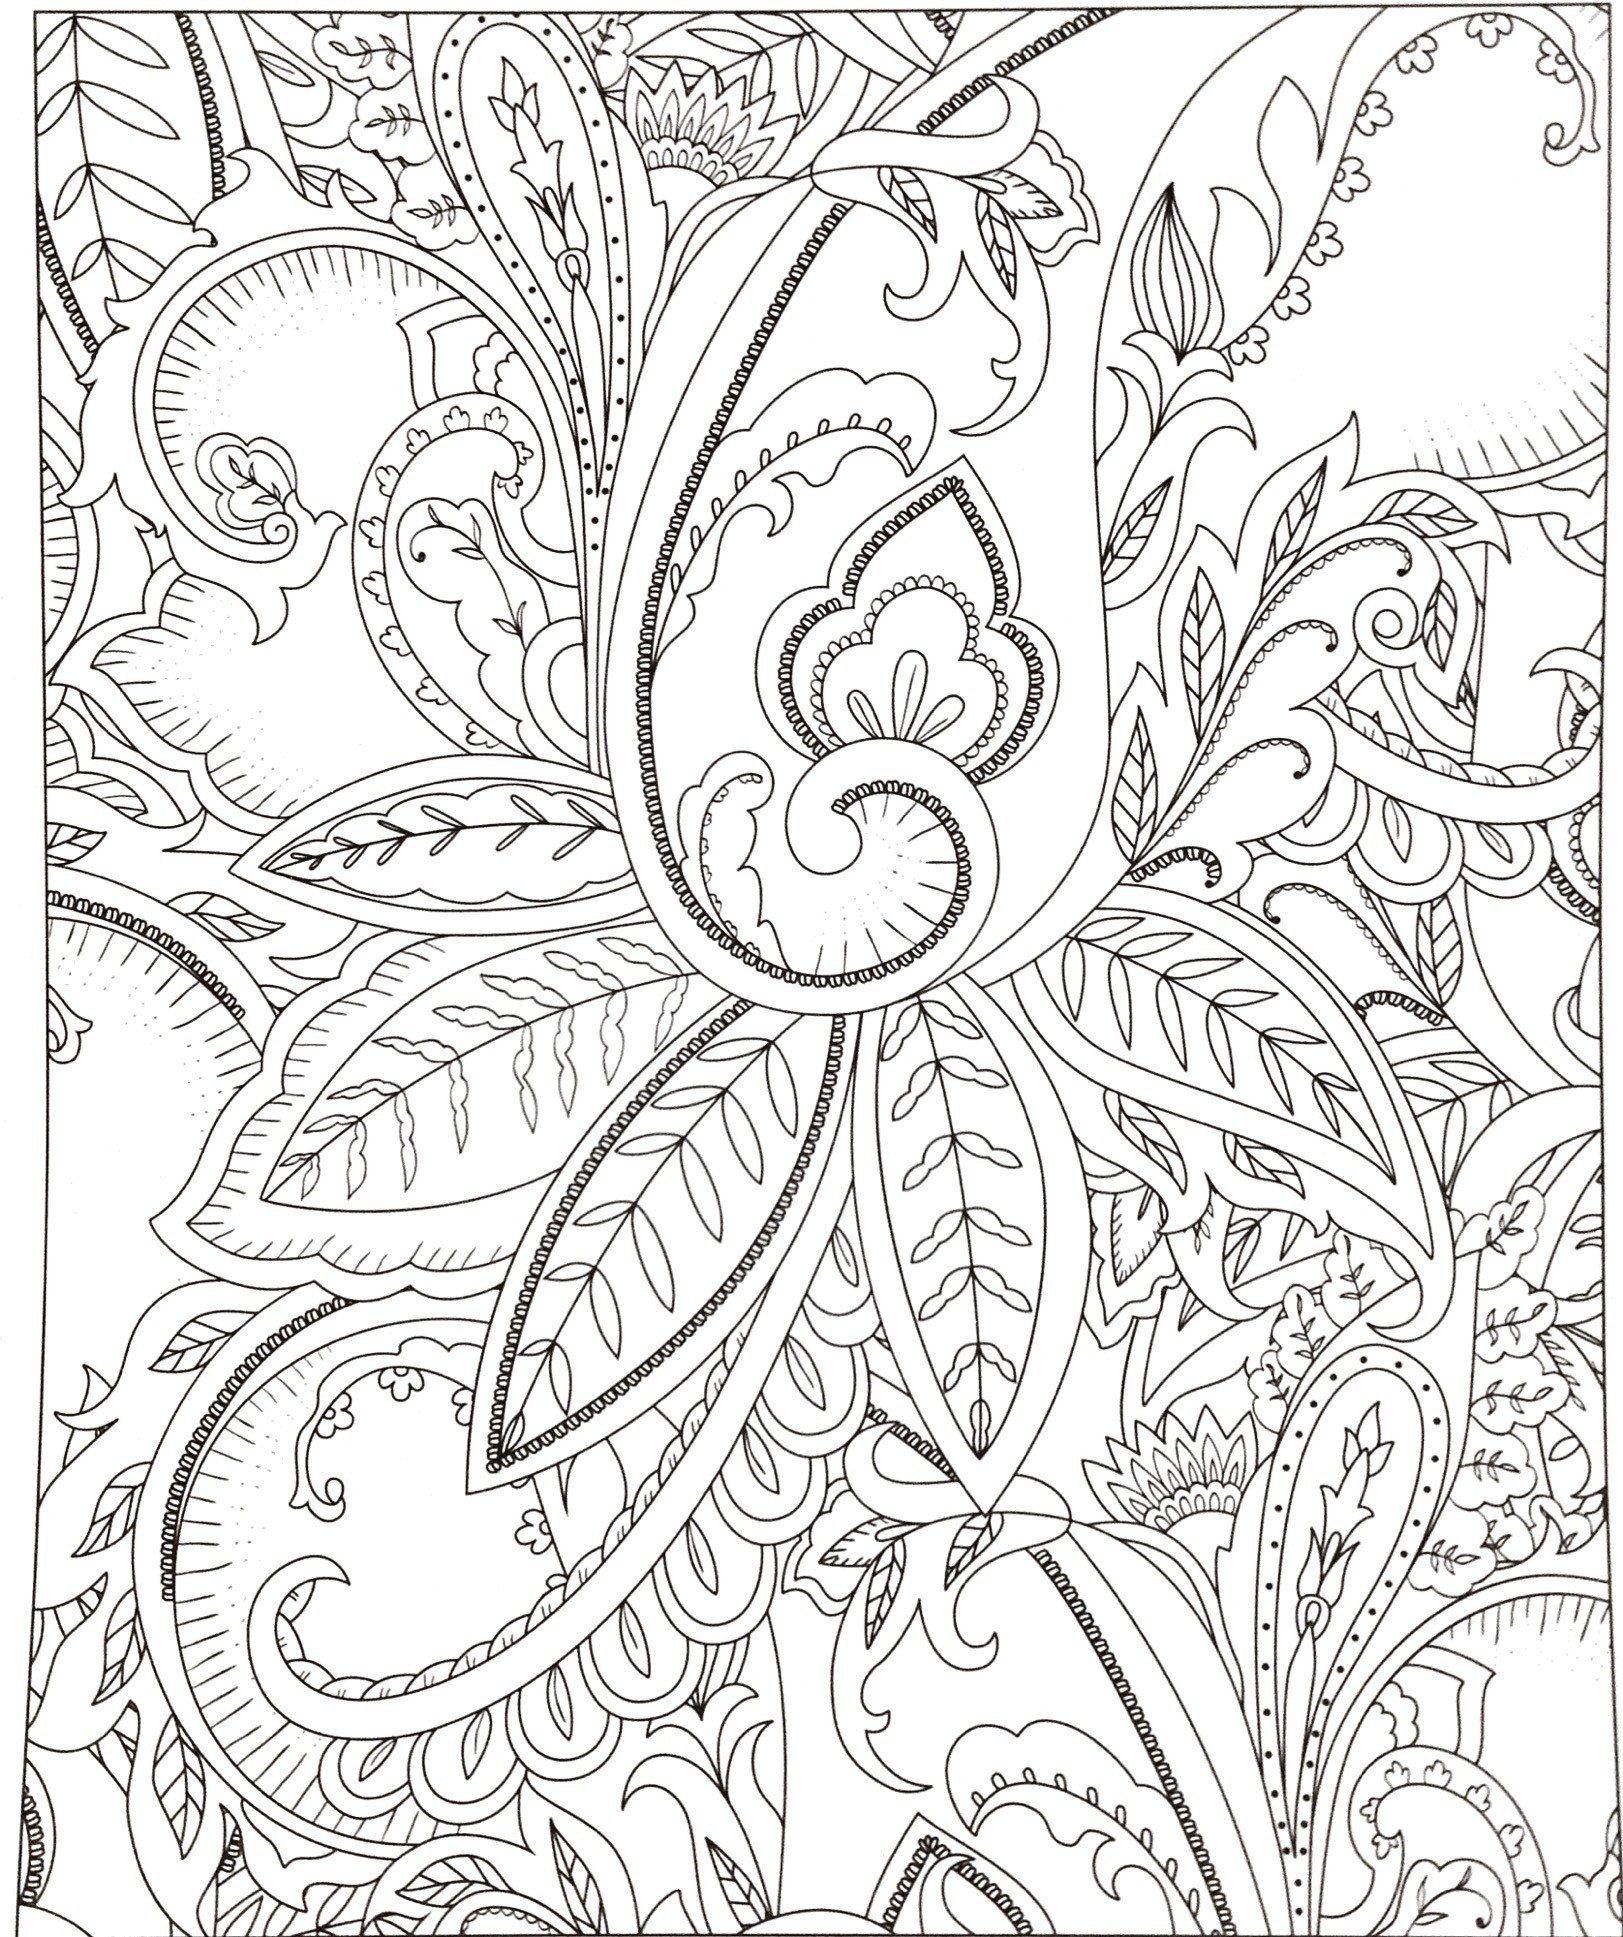 flower vase design of cool vases flower vase coloring page pages flowers in a top i 0d ruva with regard to cool vases flower vase coloring page pages flowers in a top i 0d